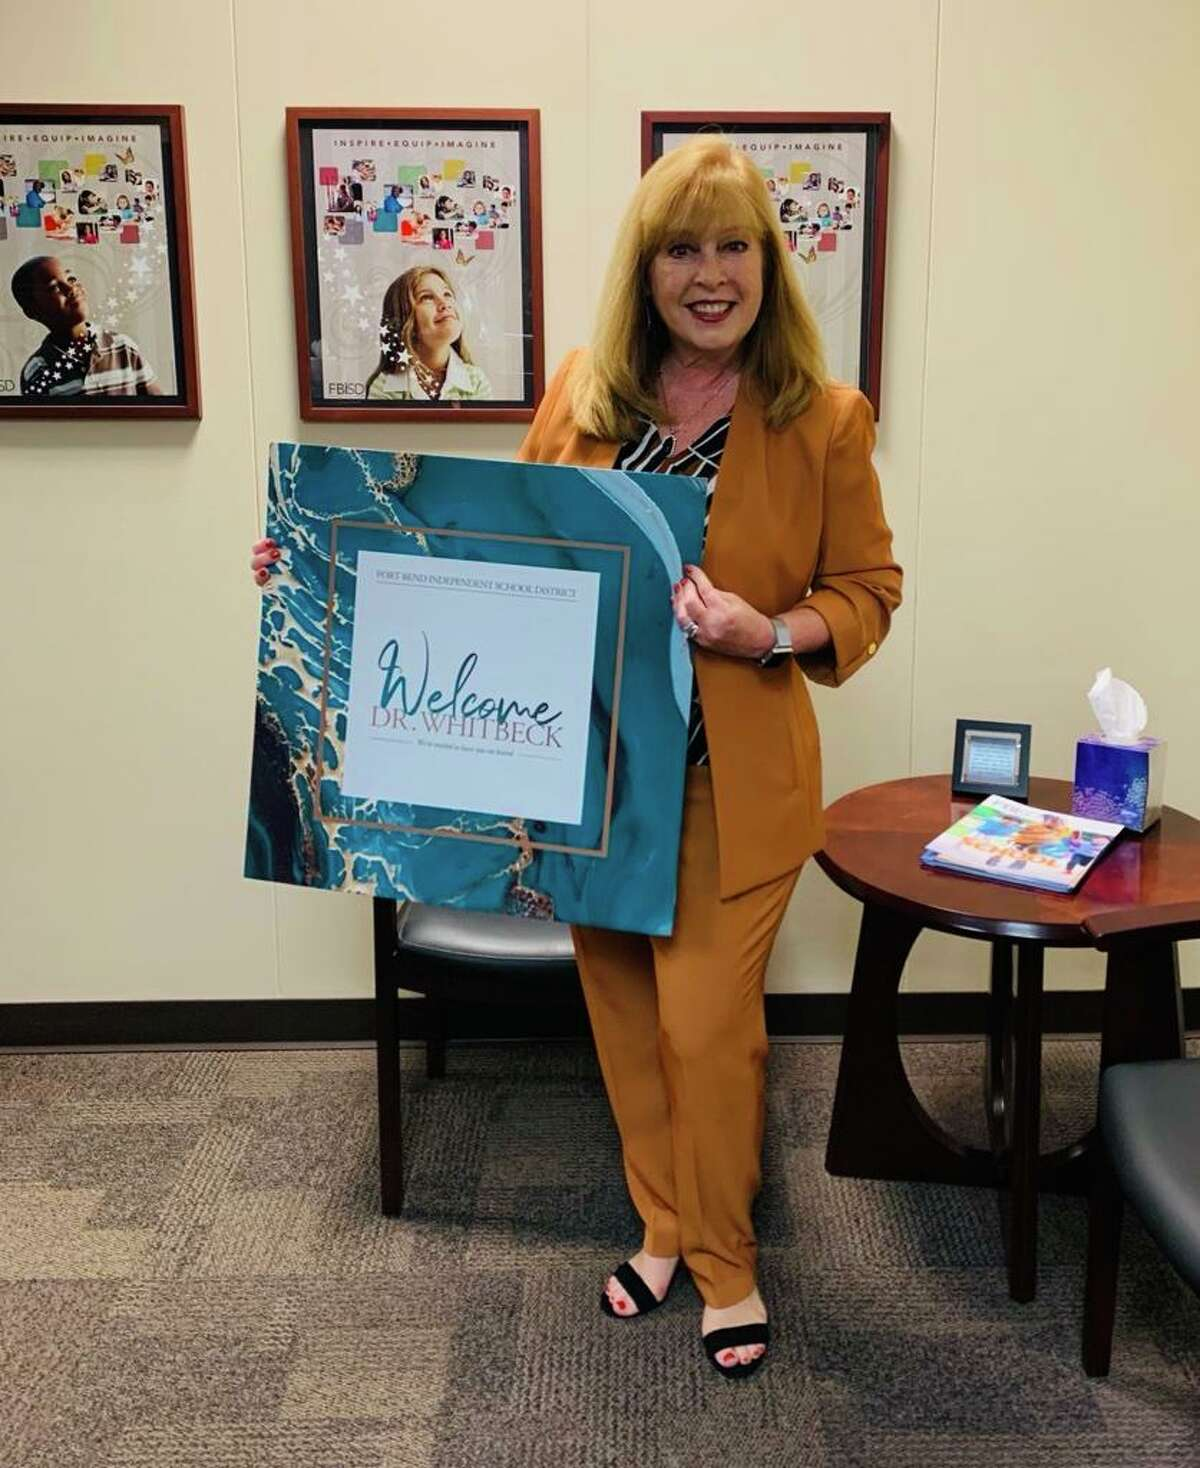 Fort Bend ISD welcomed Christie Whitbeck as its new superintendent on Wednesday, Oct. 6.